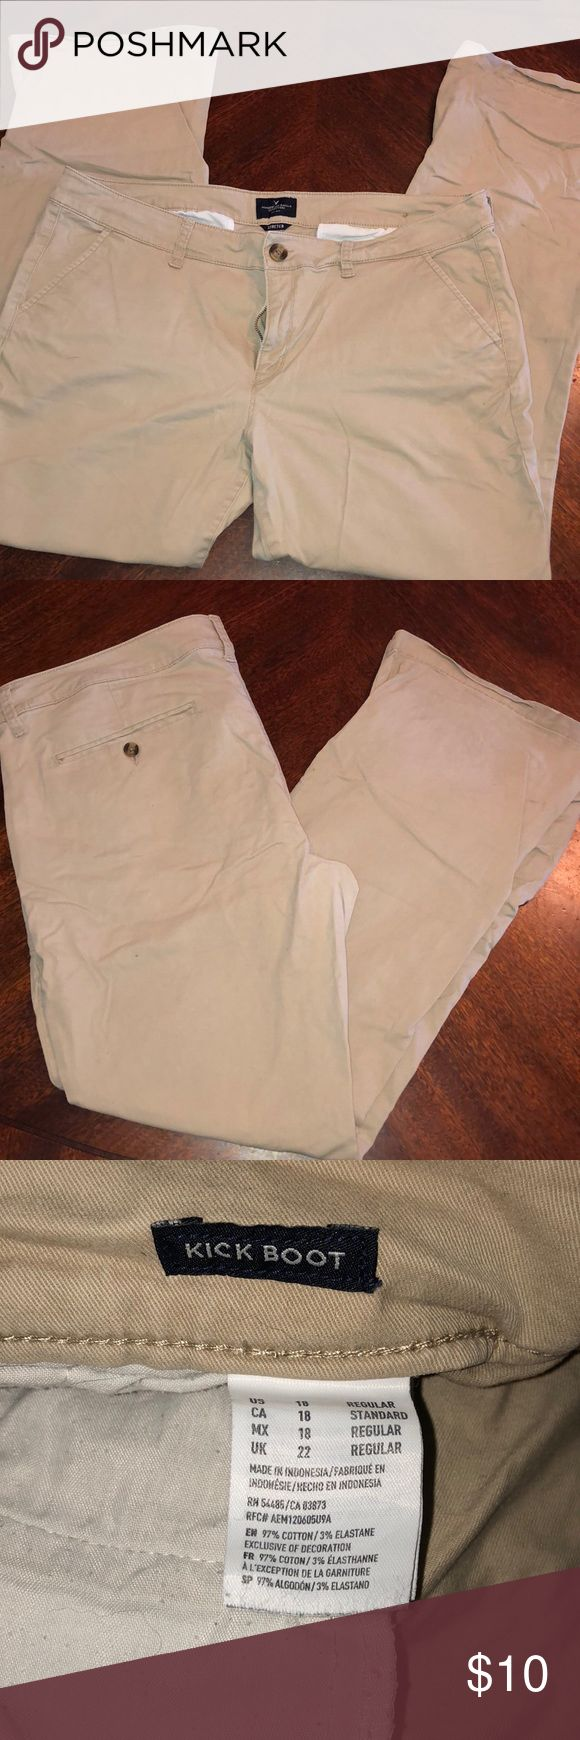 American Eagle Pants - Size: 18 Regular  - Gently Worn - Khaki pant - Style: Kick Boot  - Button pockets - Stretchy Comfortable Fit - Slight discoloration on bottom hem of pants other than that in great condition  ❤️ I'm fast at shopping & love receiving offers❤️ American Eagle Outfitters Pants